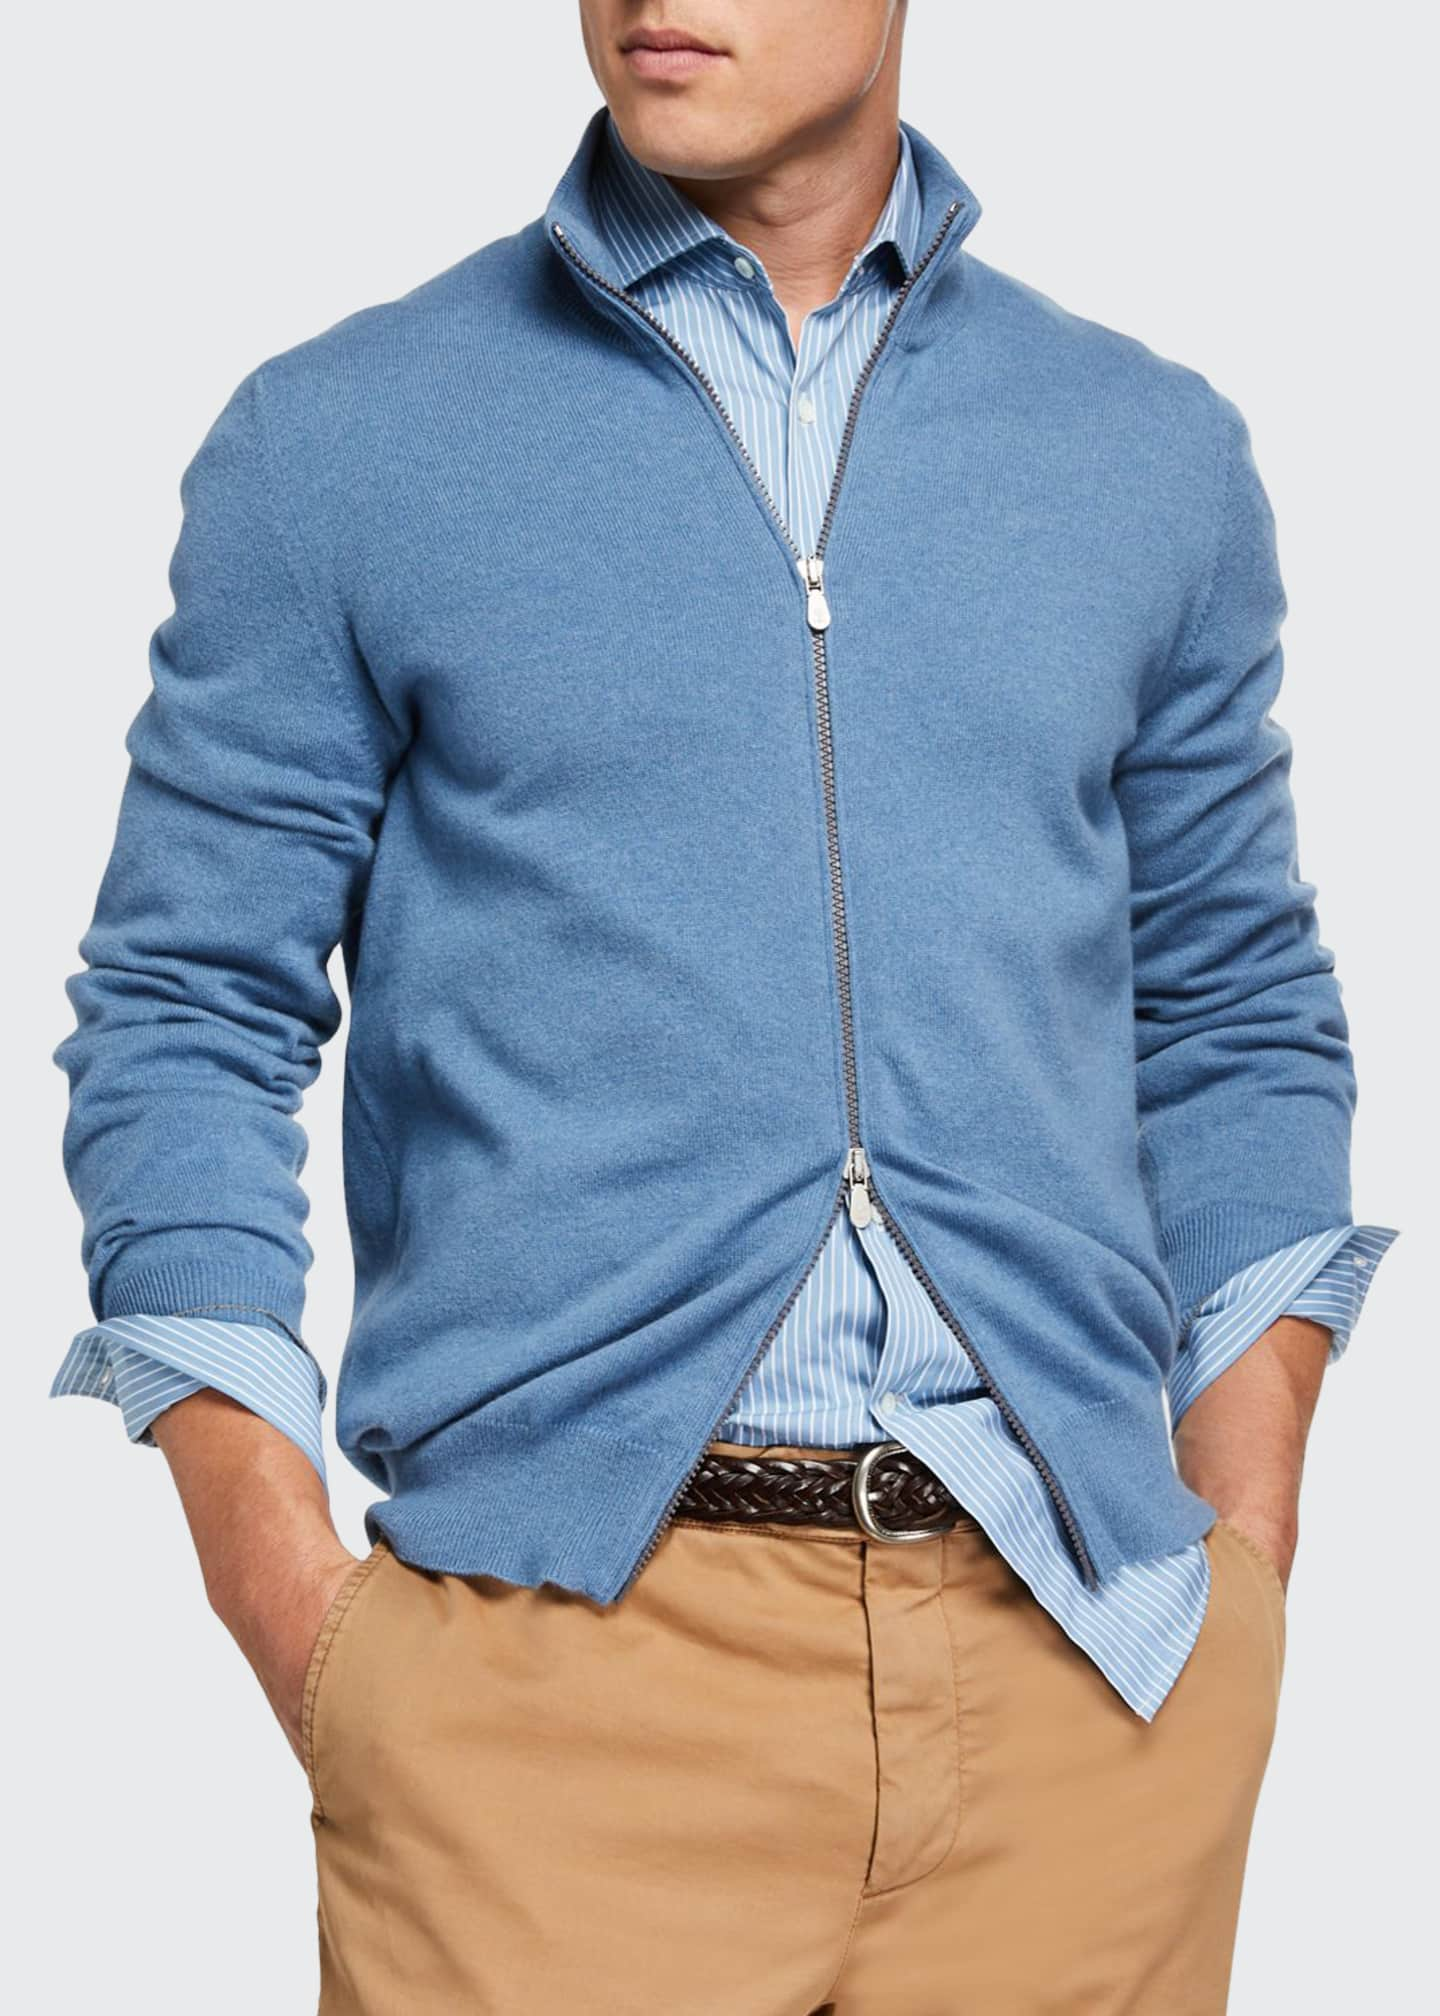 Men's Cashmere Zip-Front Sweater